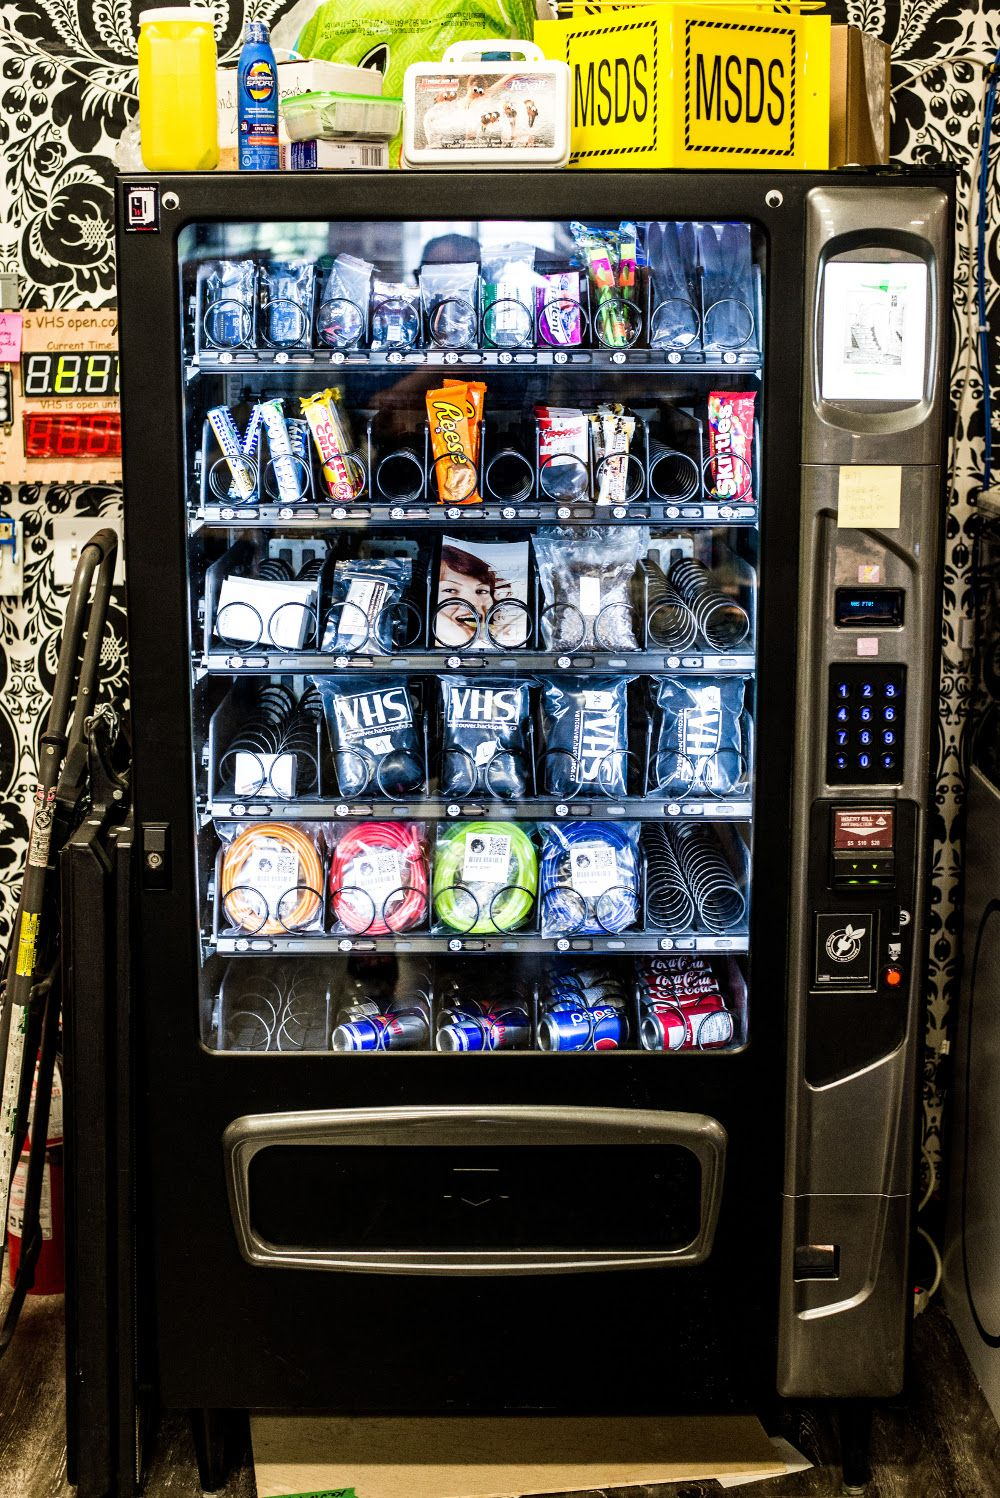 Vending Machine Hack Code Any - Year of Clean Water